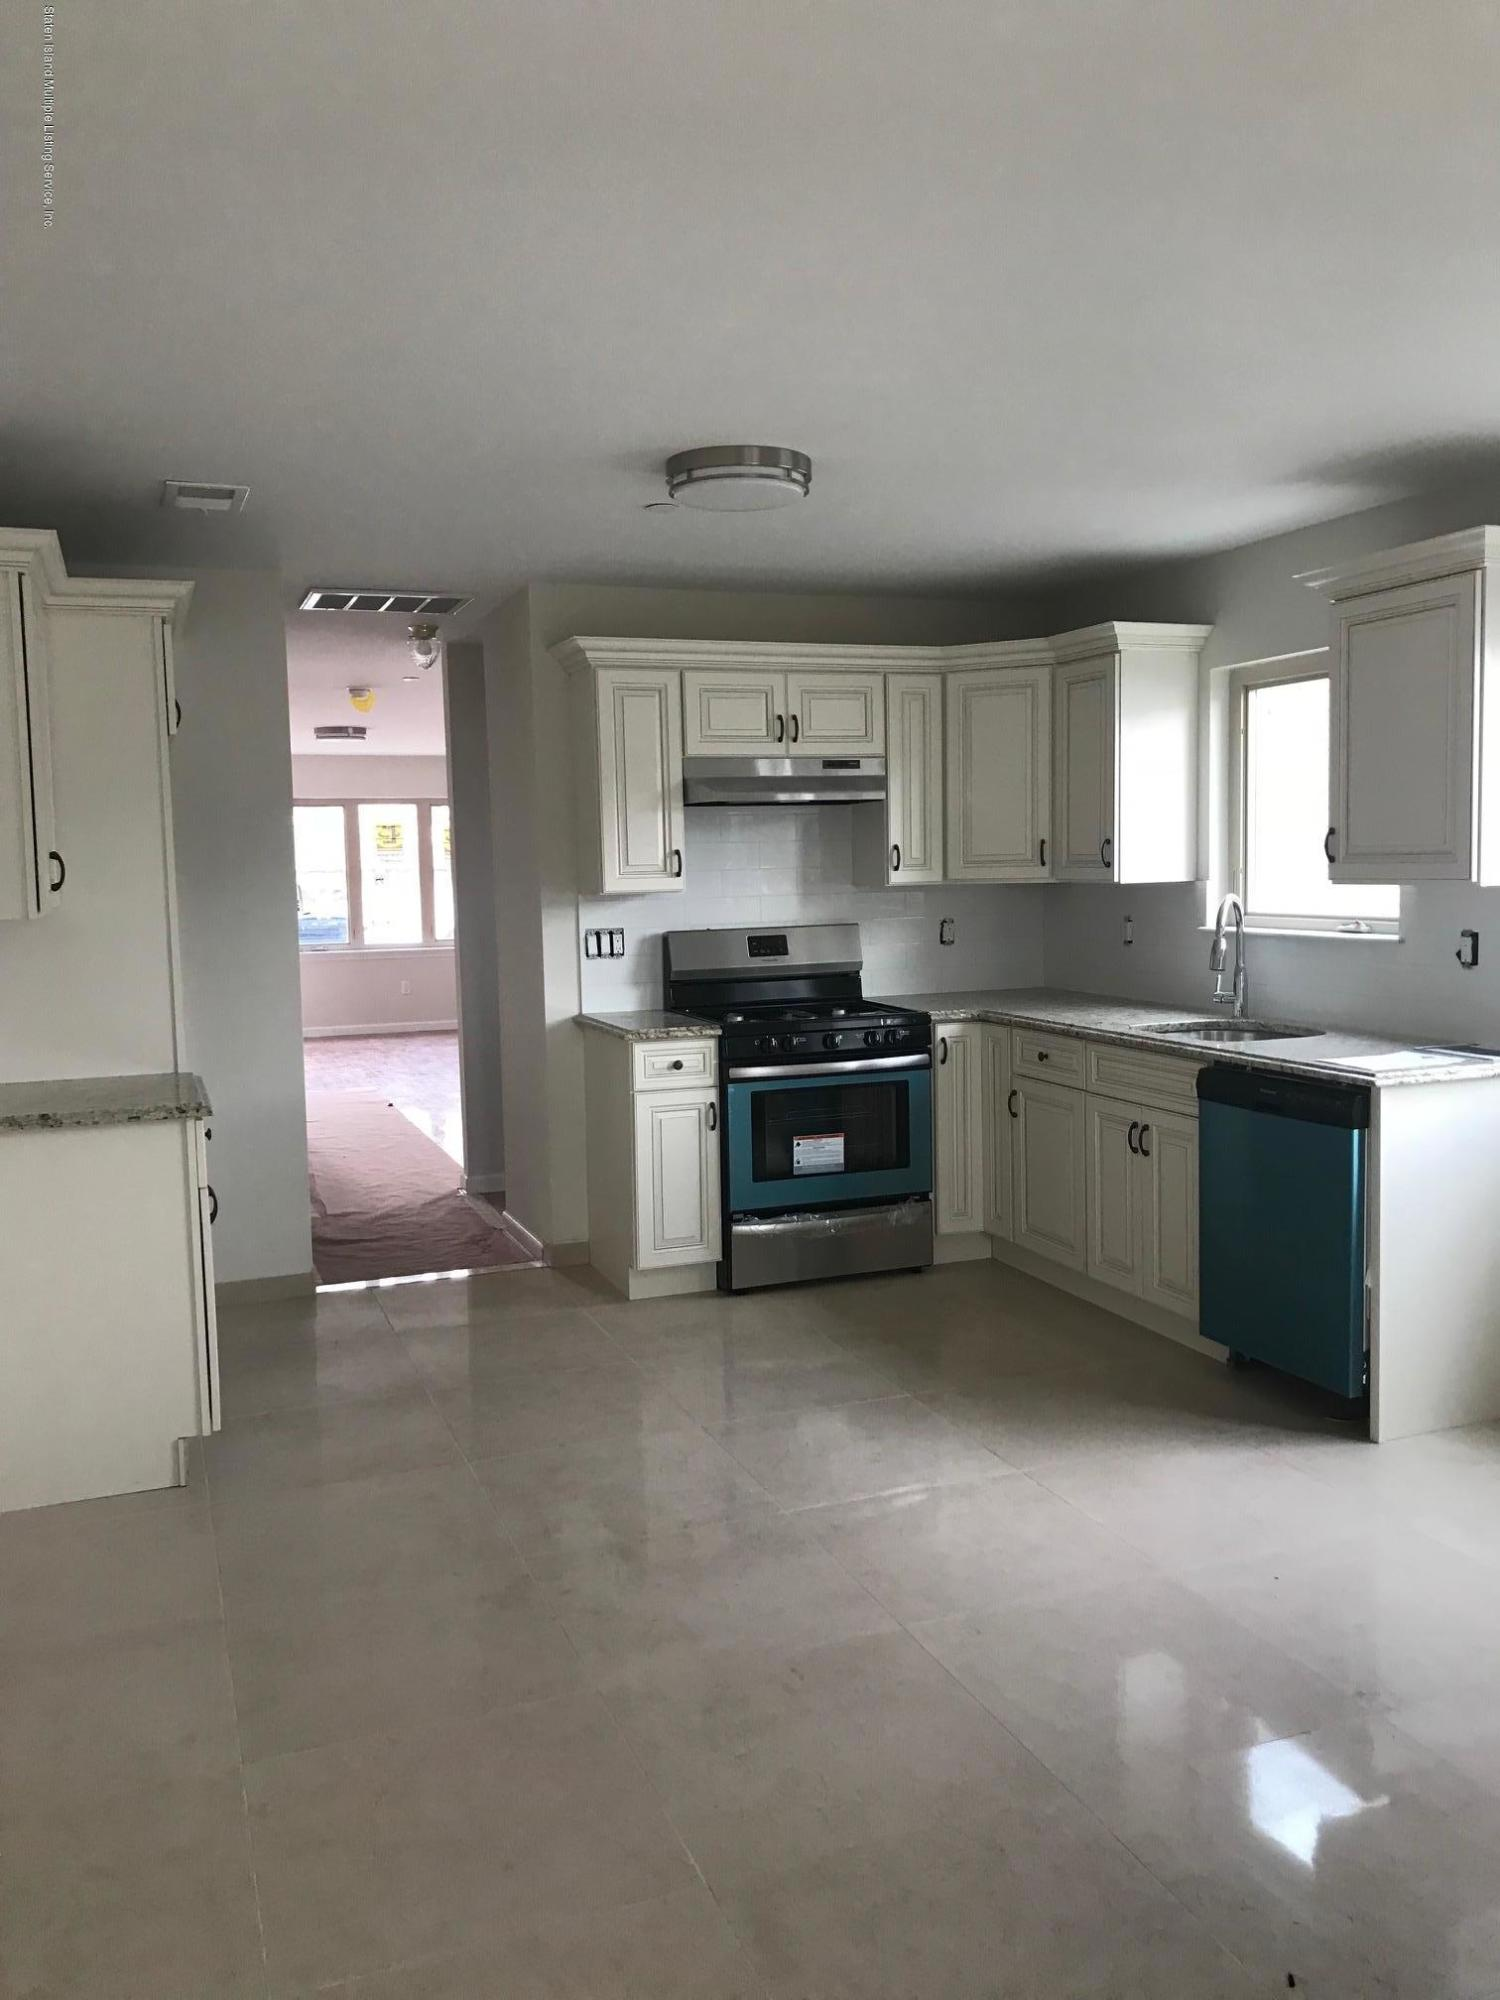 Single Family - Semi-Attached 8 Summerfield Place  Staten Island, NY 10303, MLS-1125803-3